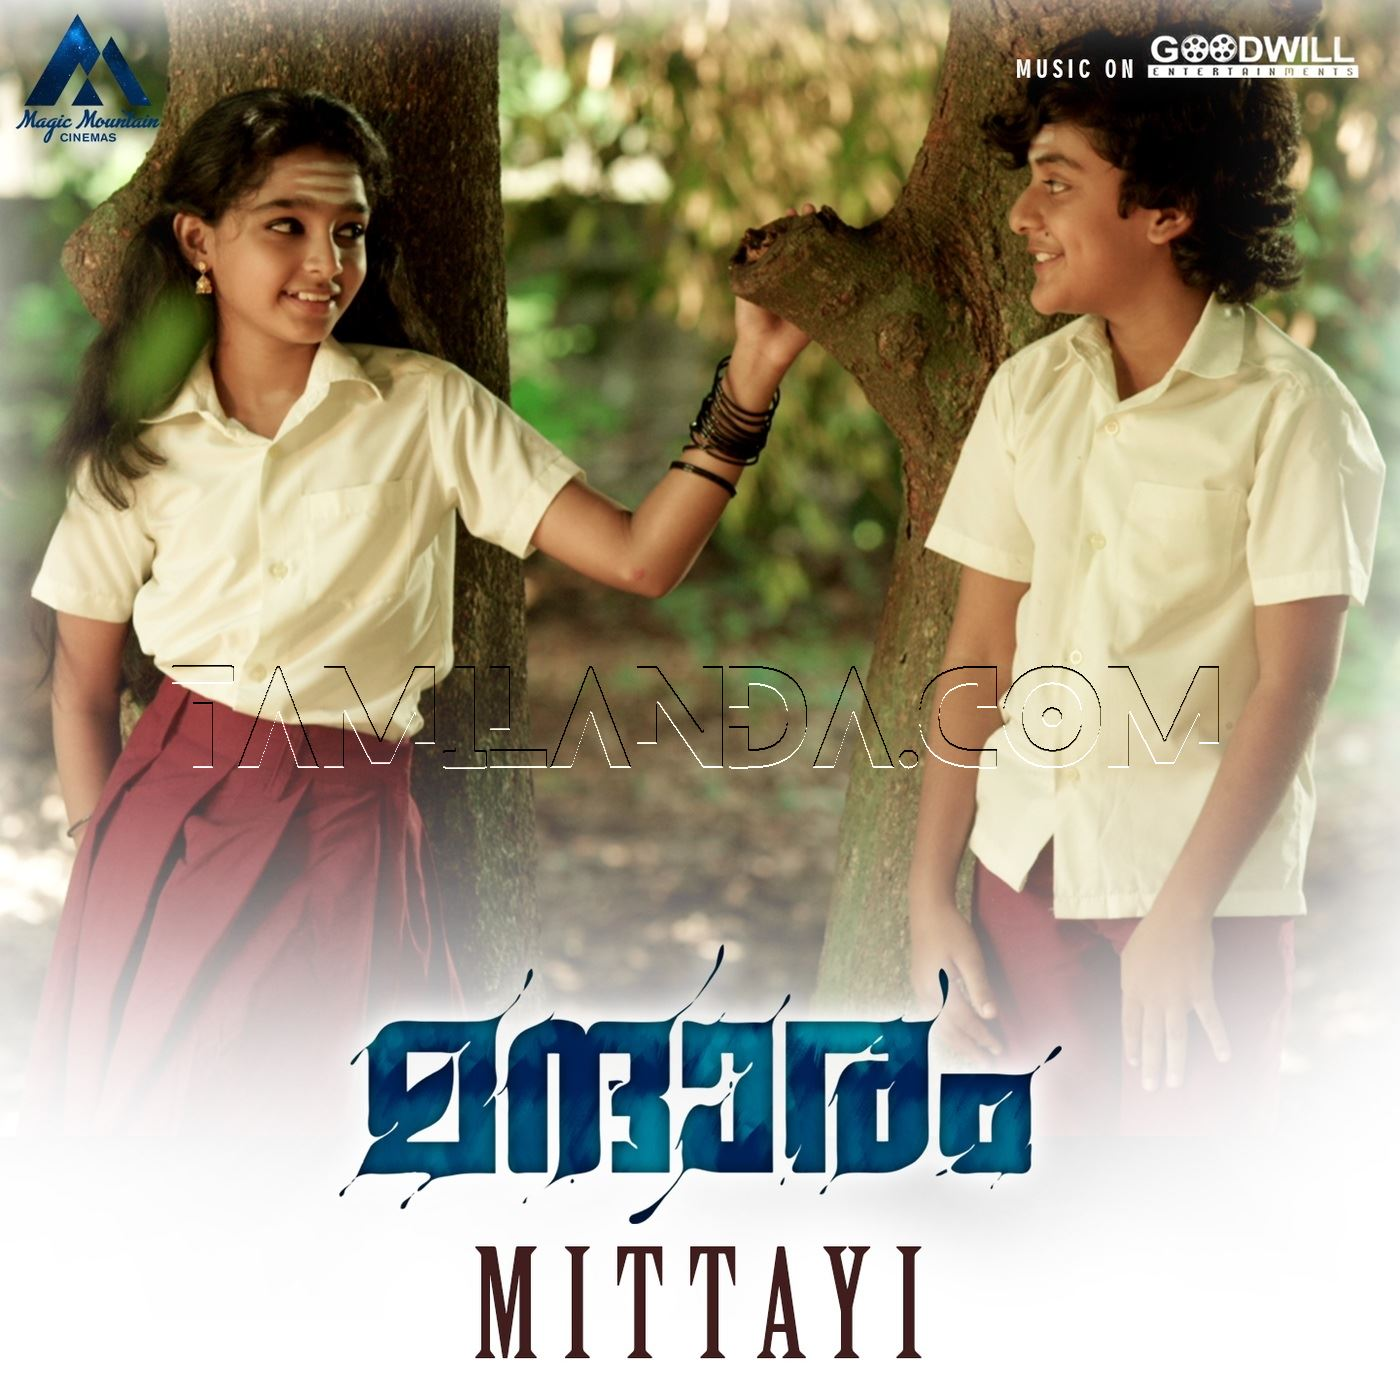 Mittayi – Single (From Mandharam) FLAC/WAV Song